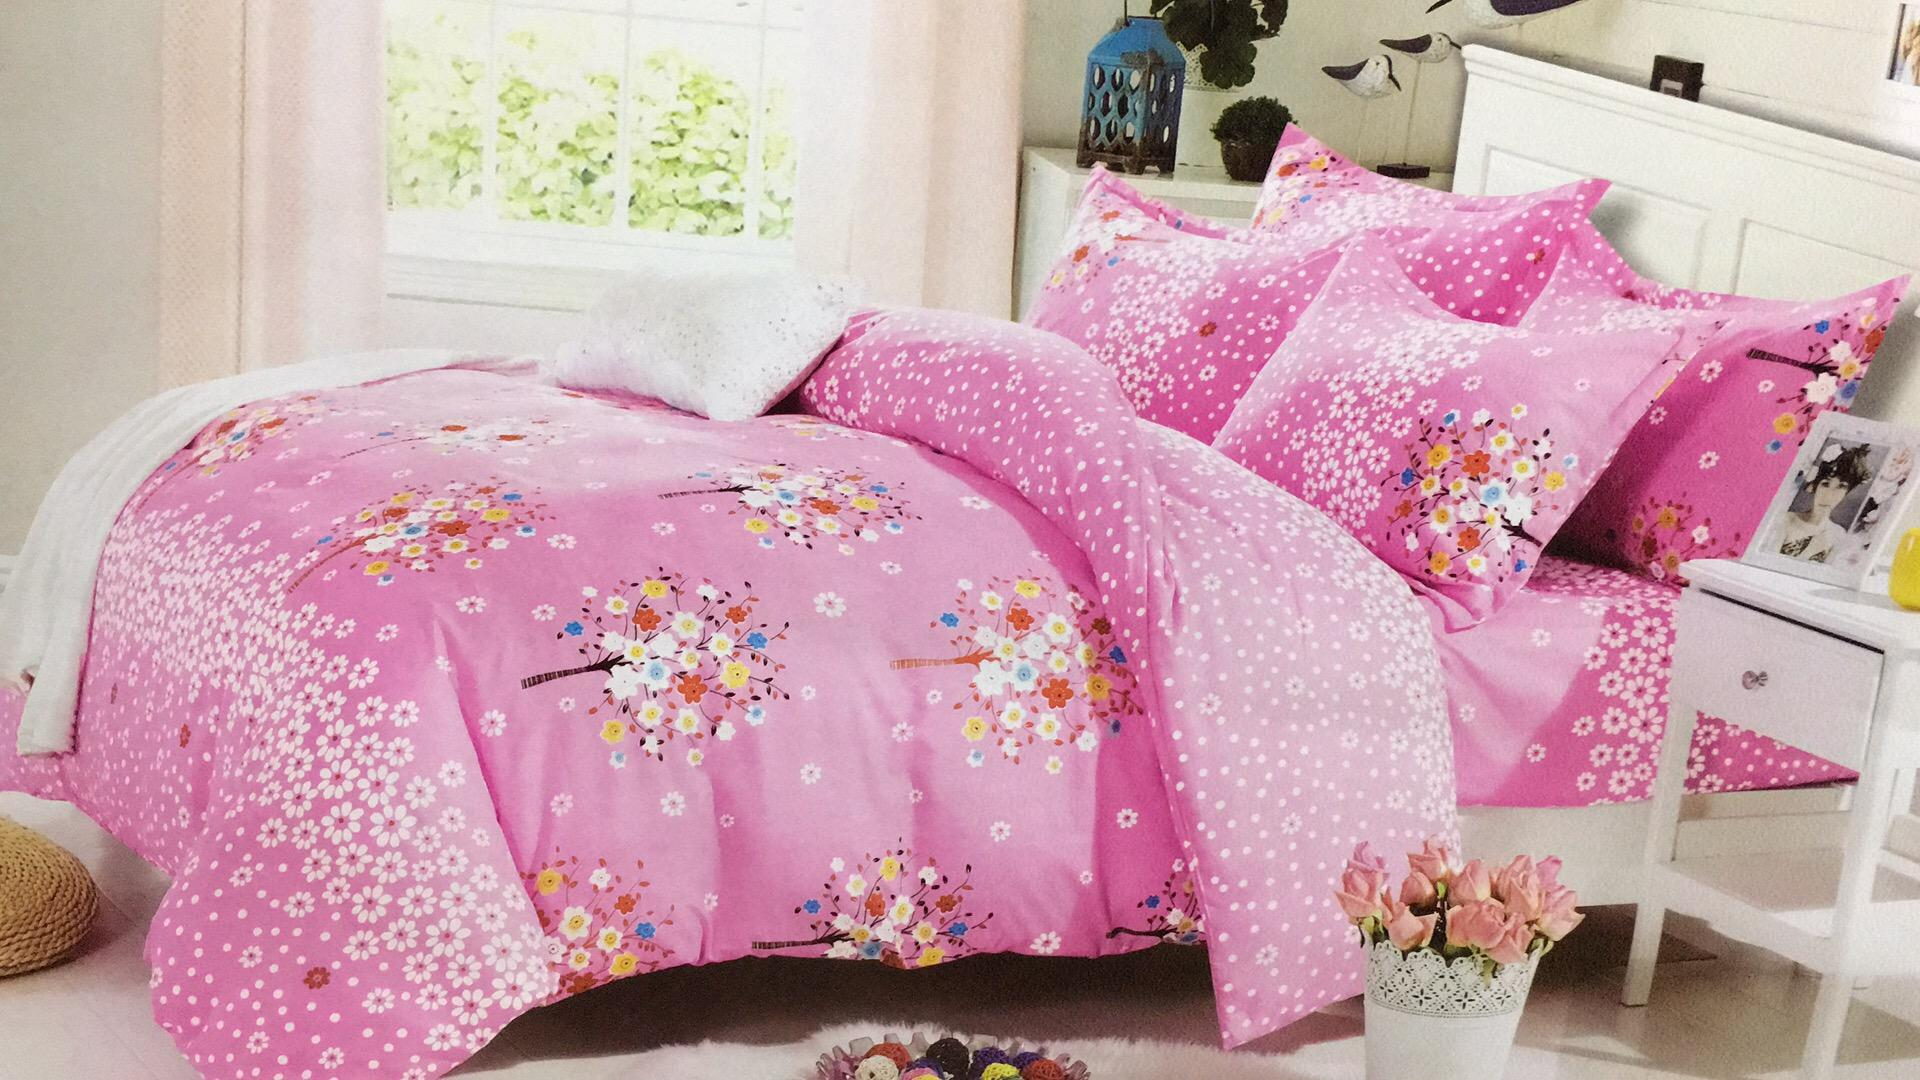 b234f1dcfc0 3in1 Double Size Bedding Bed Sheet Set 48*75+7.8